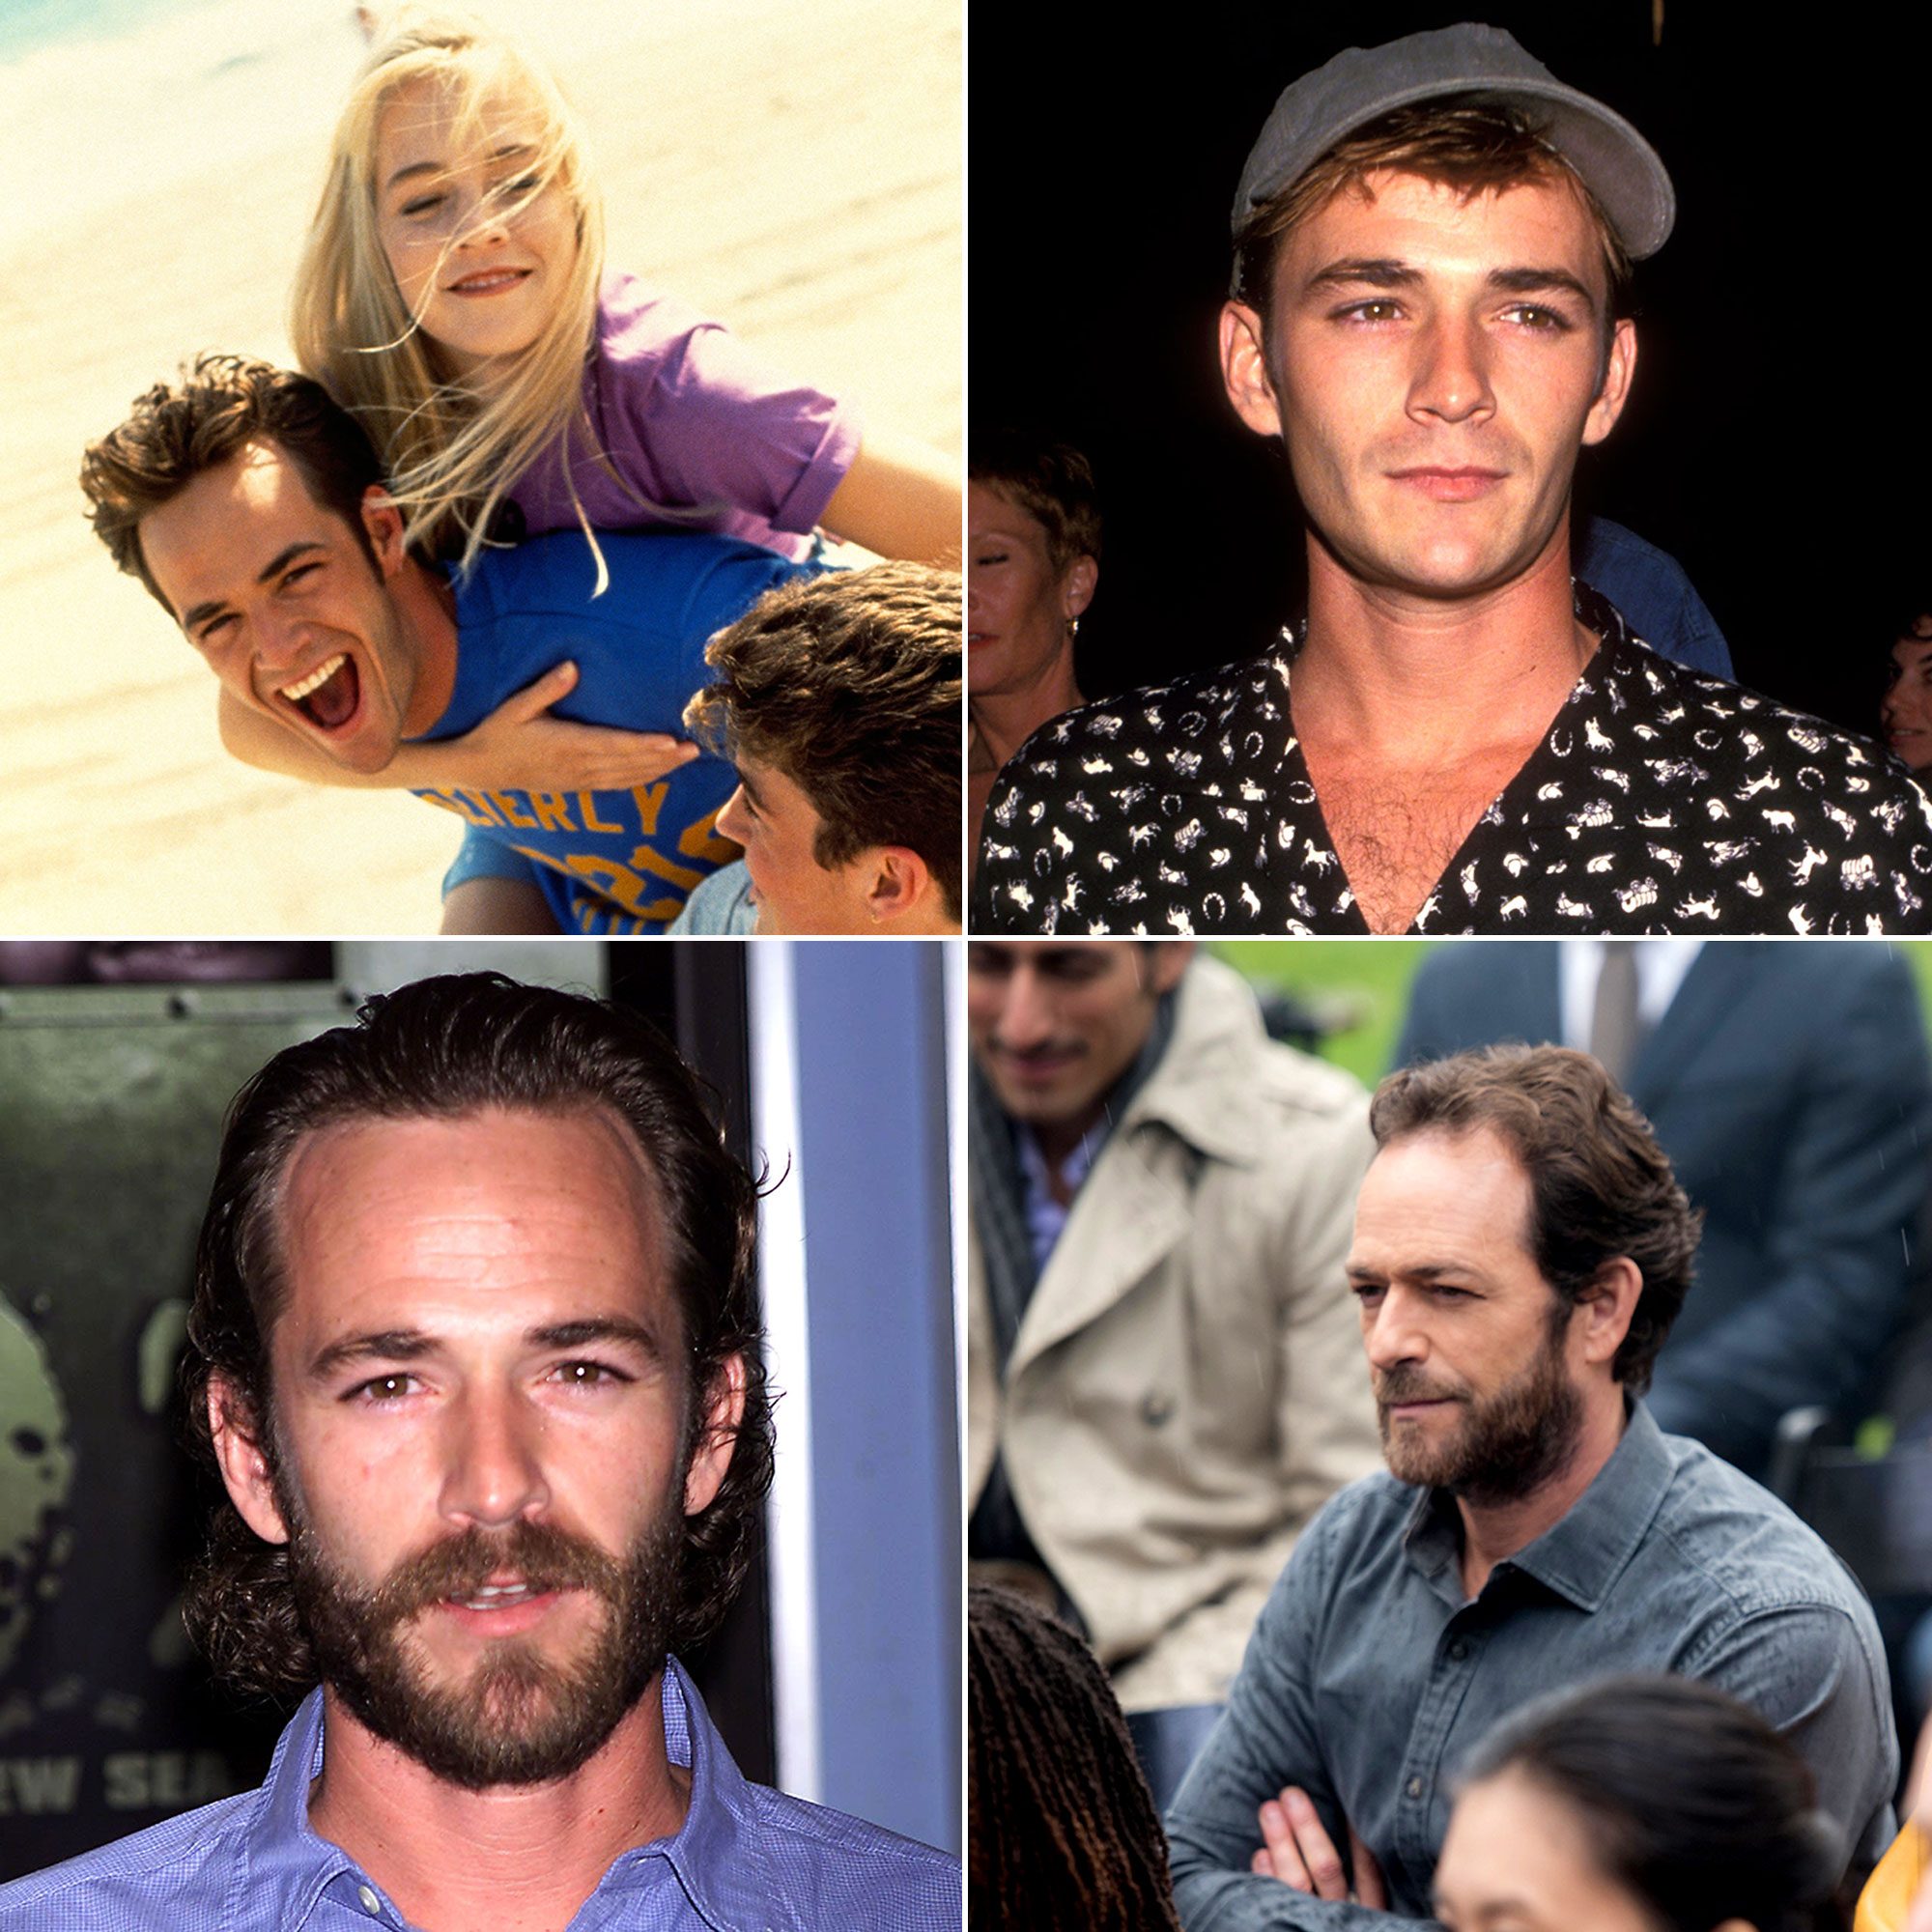 Luke Perry Through the Years - From Dylan McKay to Fred Andrews. Luke Perry has made his mark on Hollywood, from his breakout role on Beverly Hills, 90210 to his comeback gig on Riverdale .